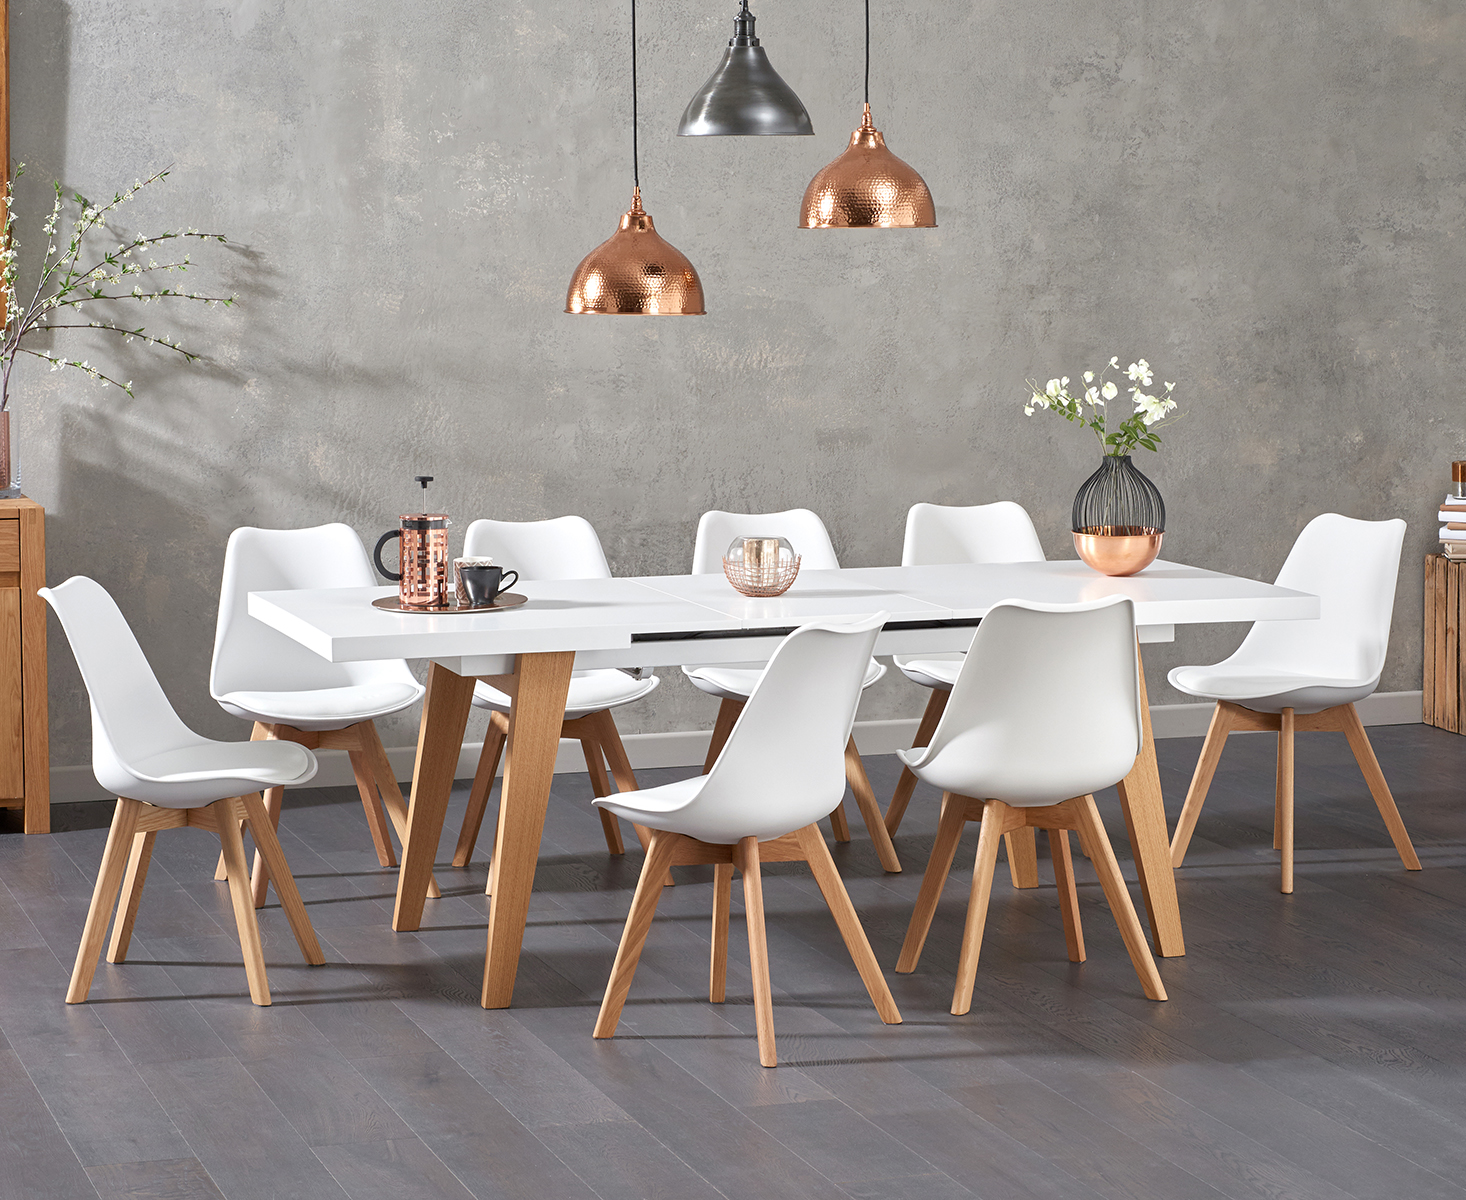 An image of Nicole Extending White Dining Table with Duke Faux Leather Chairs - White, 4 Cha...